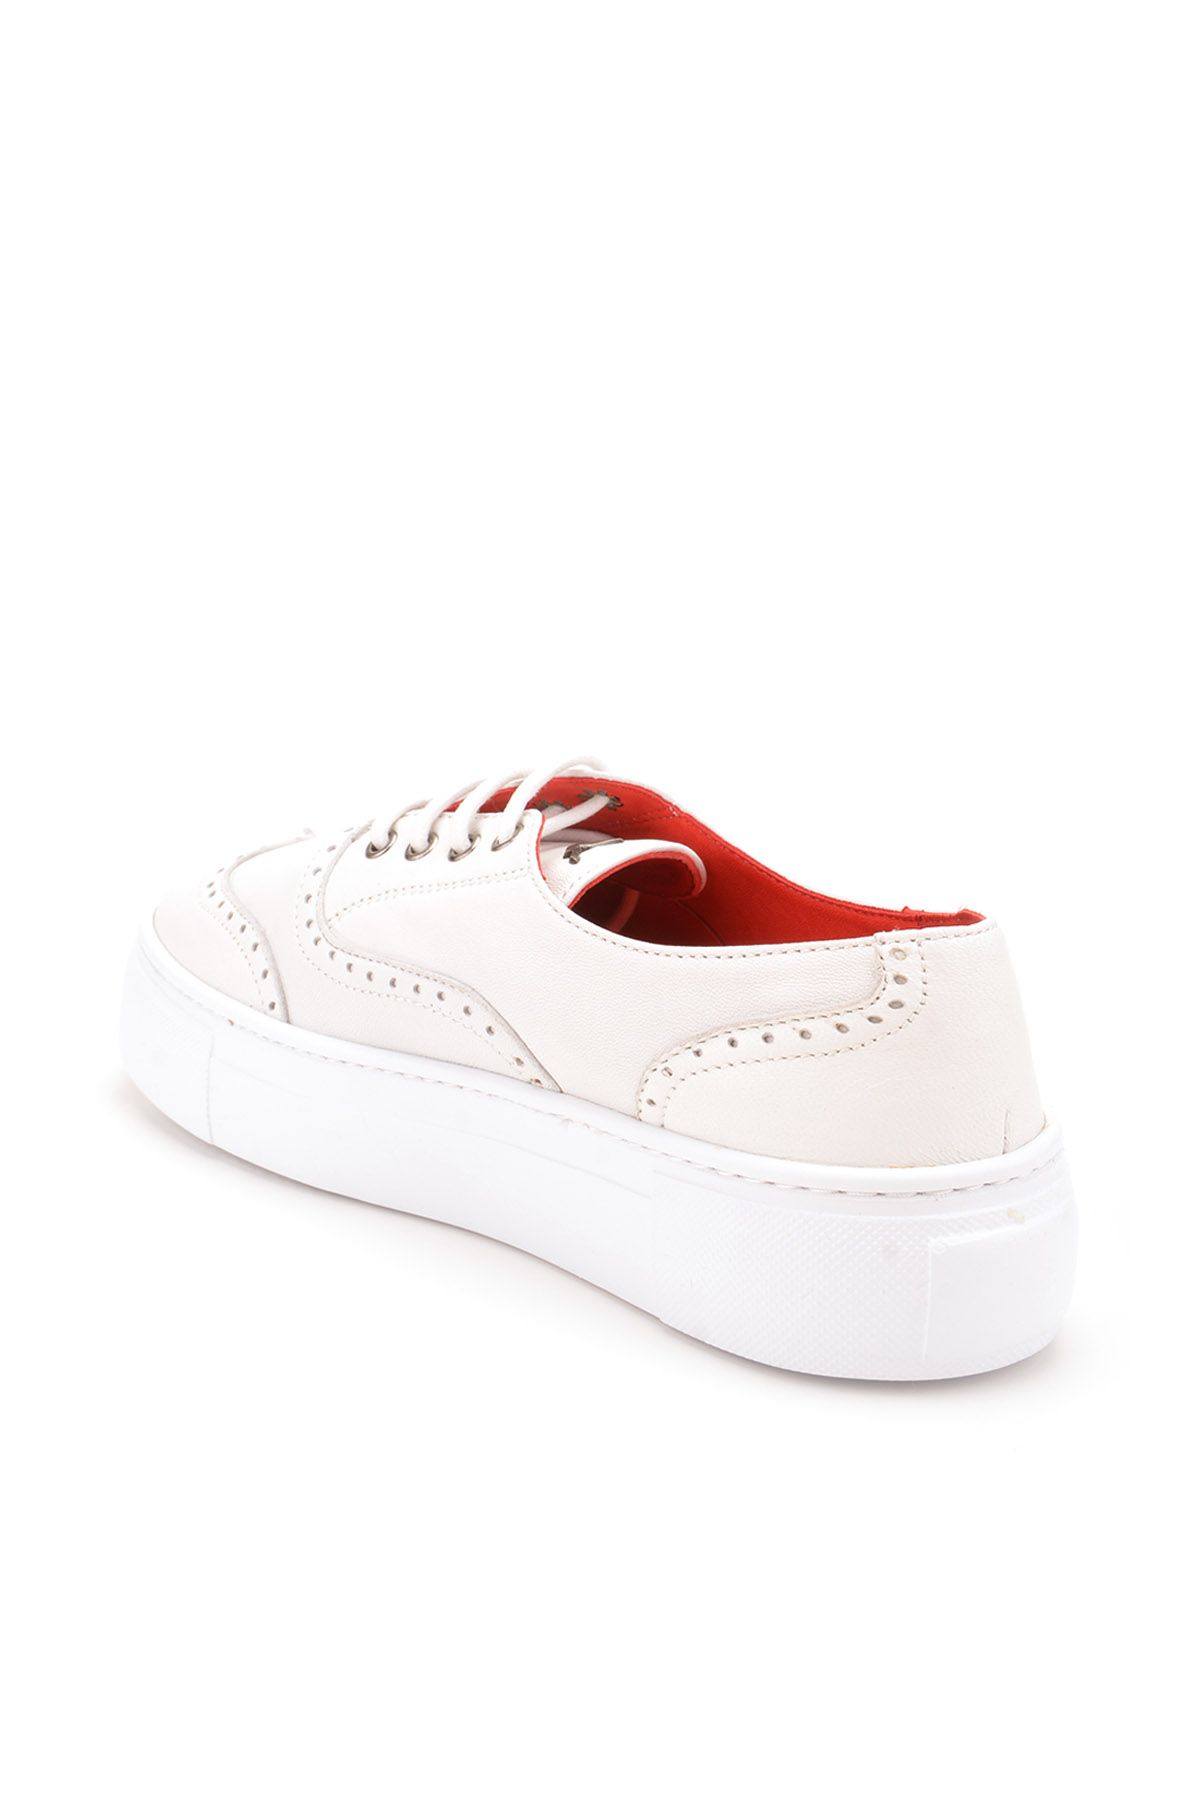 Pegia Chatalet Oxford Shoes From Genuine Leather REC-014 White